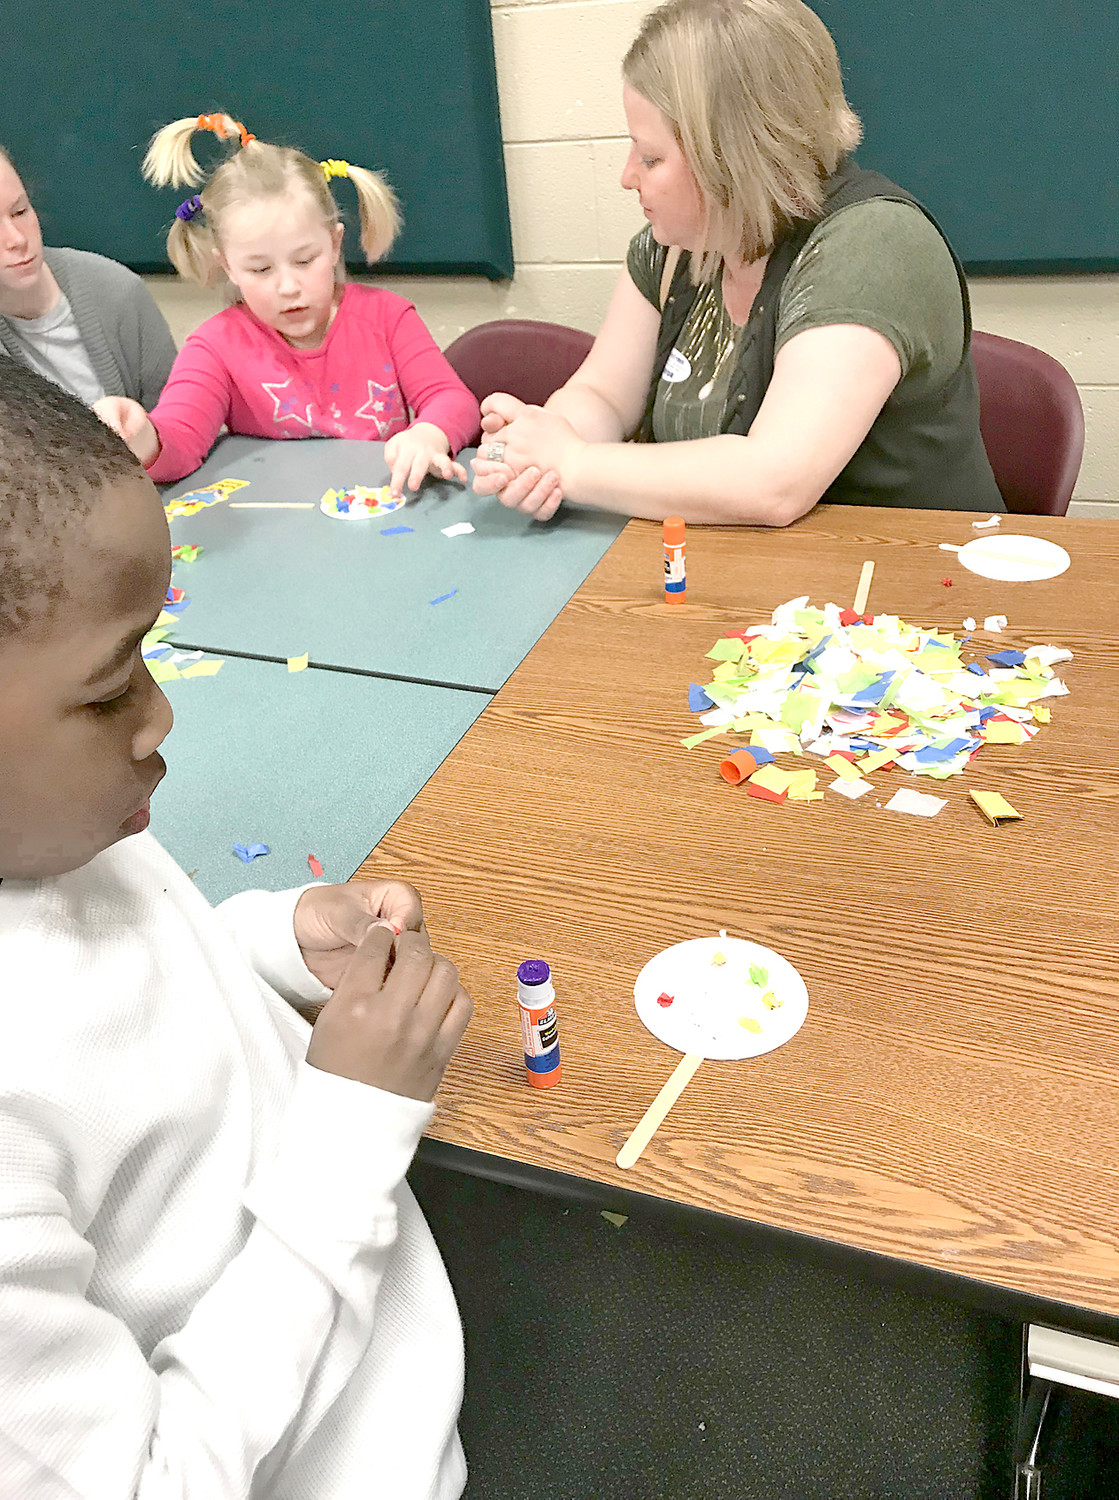 Blythe students have fun playing games and creating crafts during Blythe-Bower's weeklong salute to Dr. Seuss.